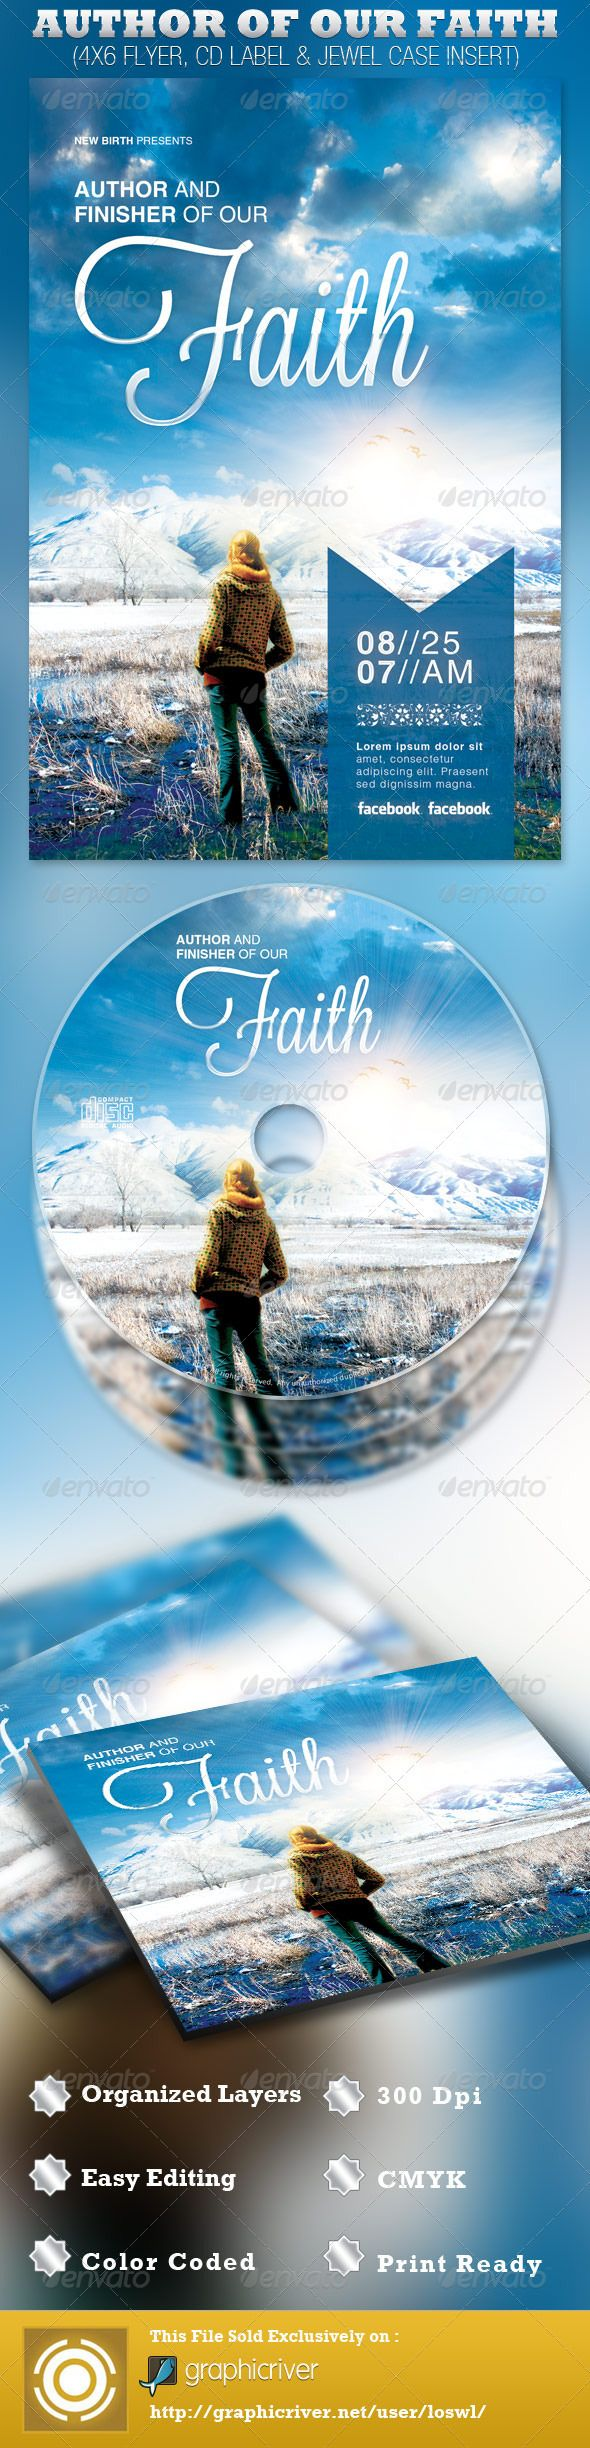 17 best images about church design ideas layout author of our faith church flyer and cd template